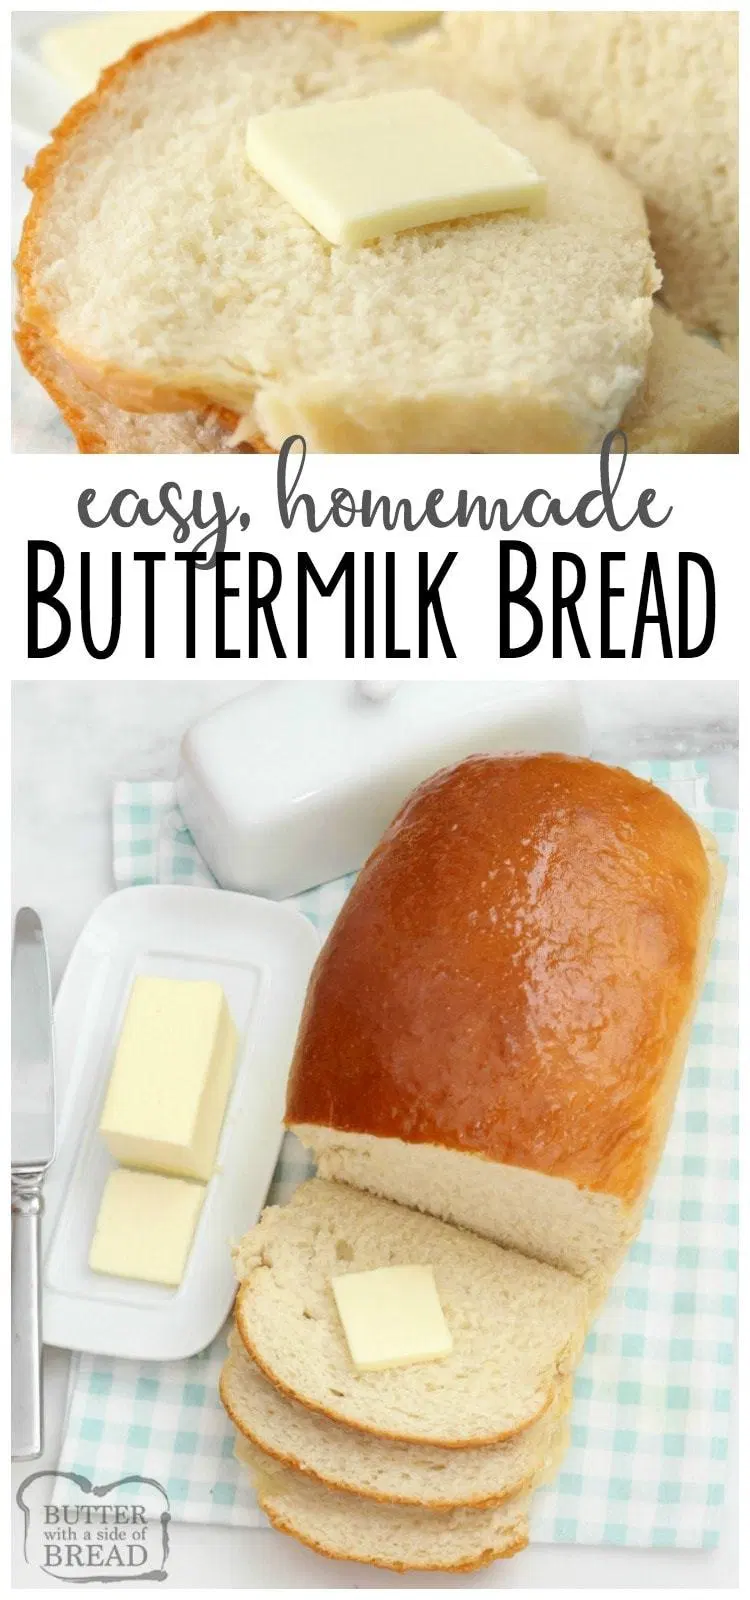 Homemade Buttermilk Bread Butter With A Side Of Bread Buttermilk Bread Baked Fresh In Your Kitchen In 2020 Buttermilk Recipes Bread Maker Recipes Dog Cake Recipes